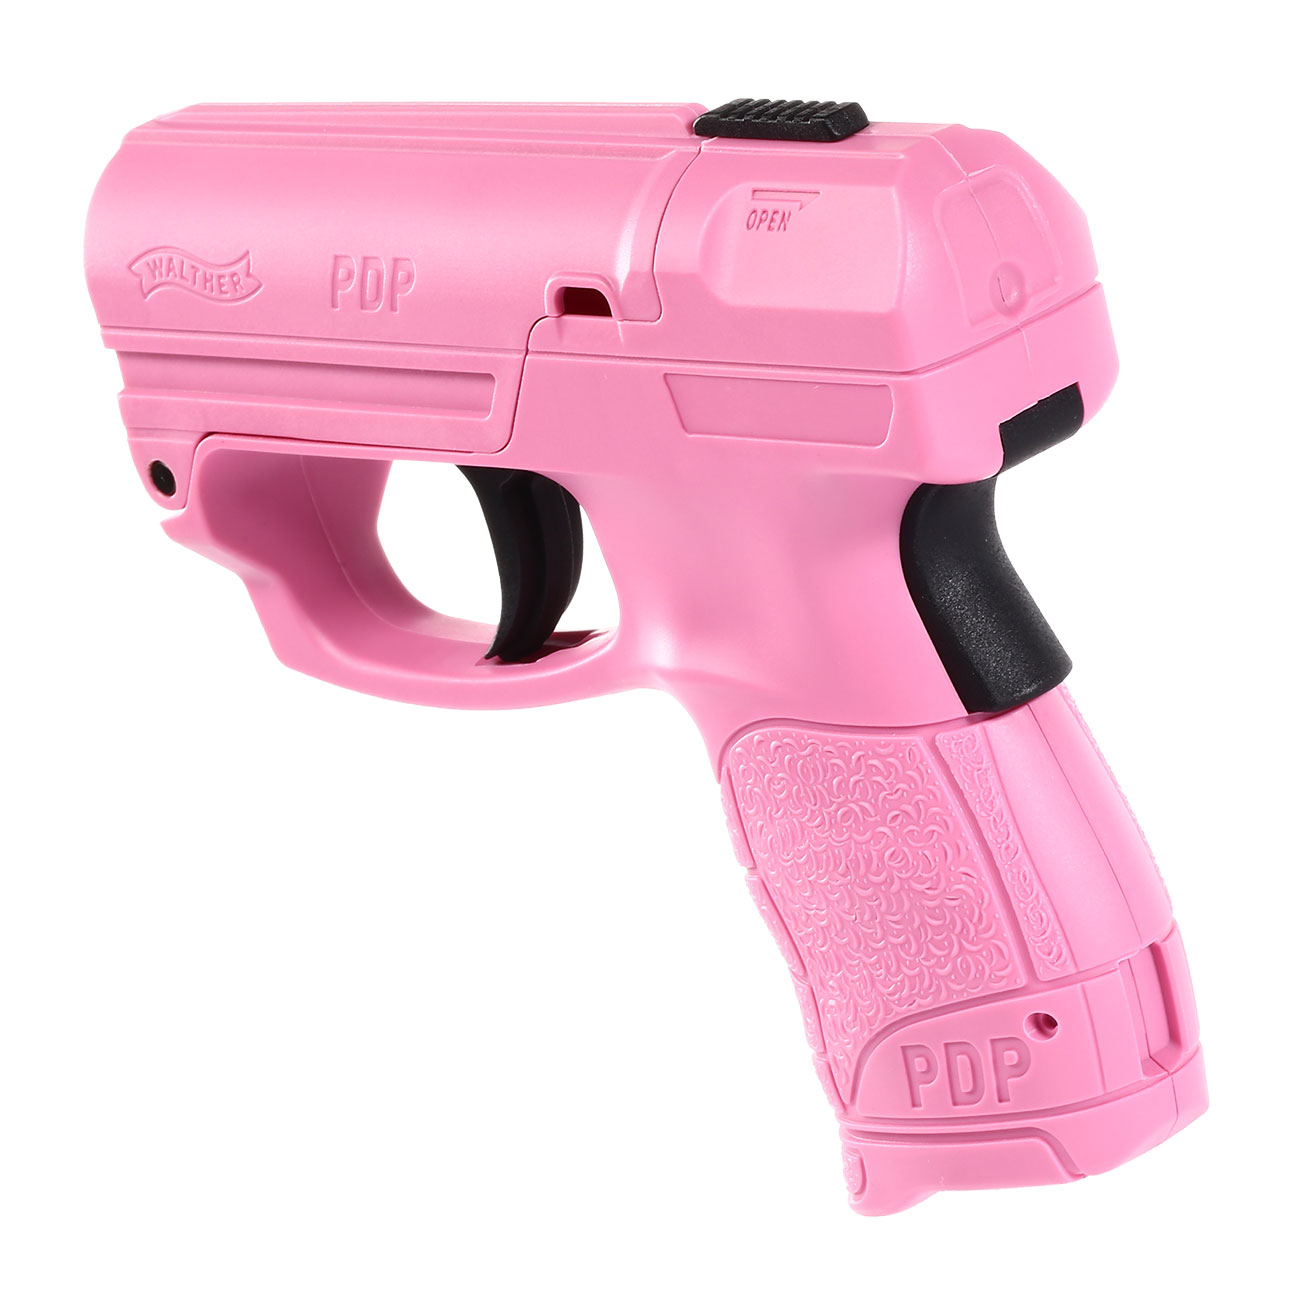 Walther Pfefferpistole PDP pink 2